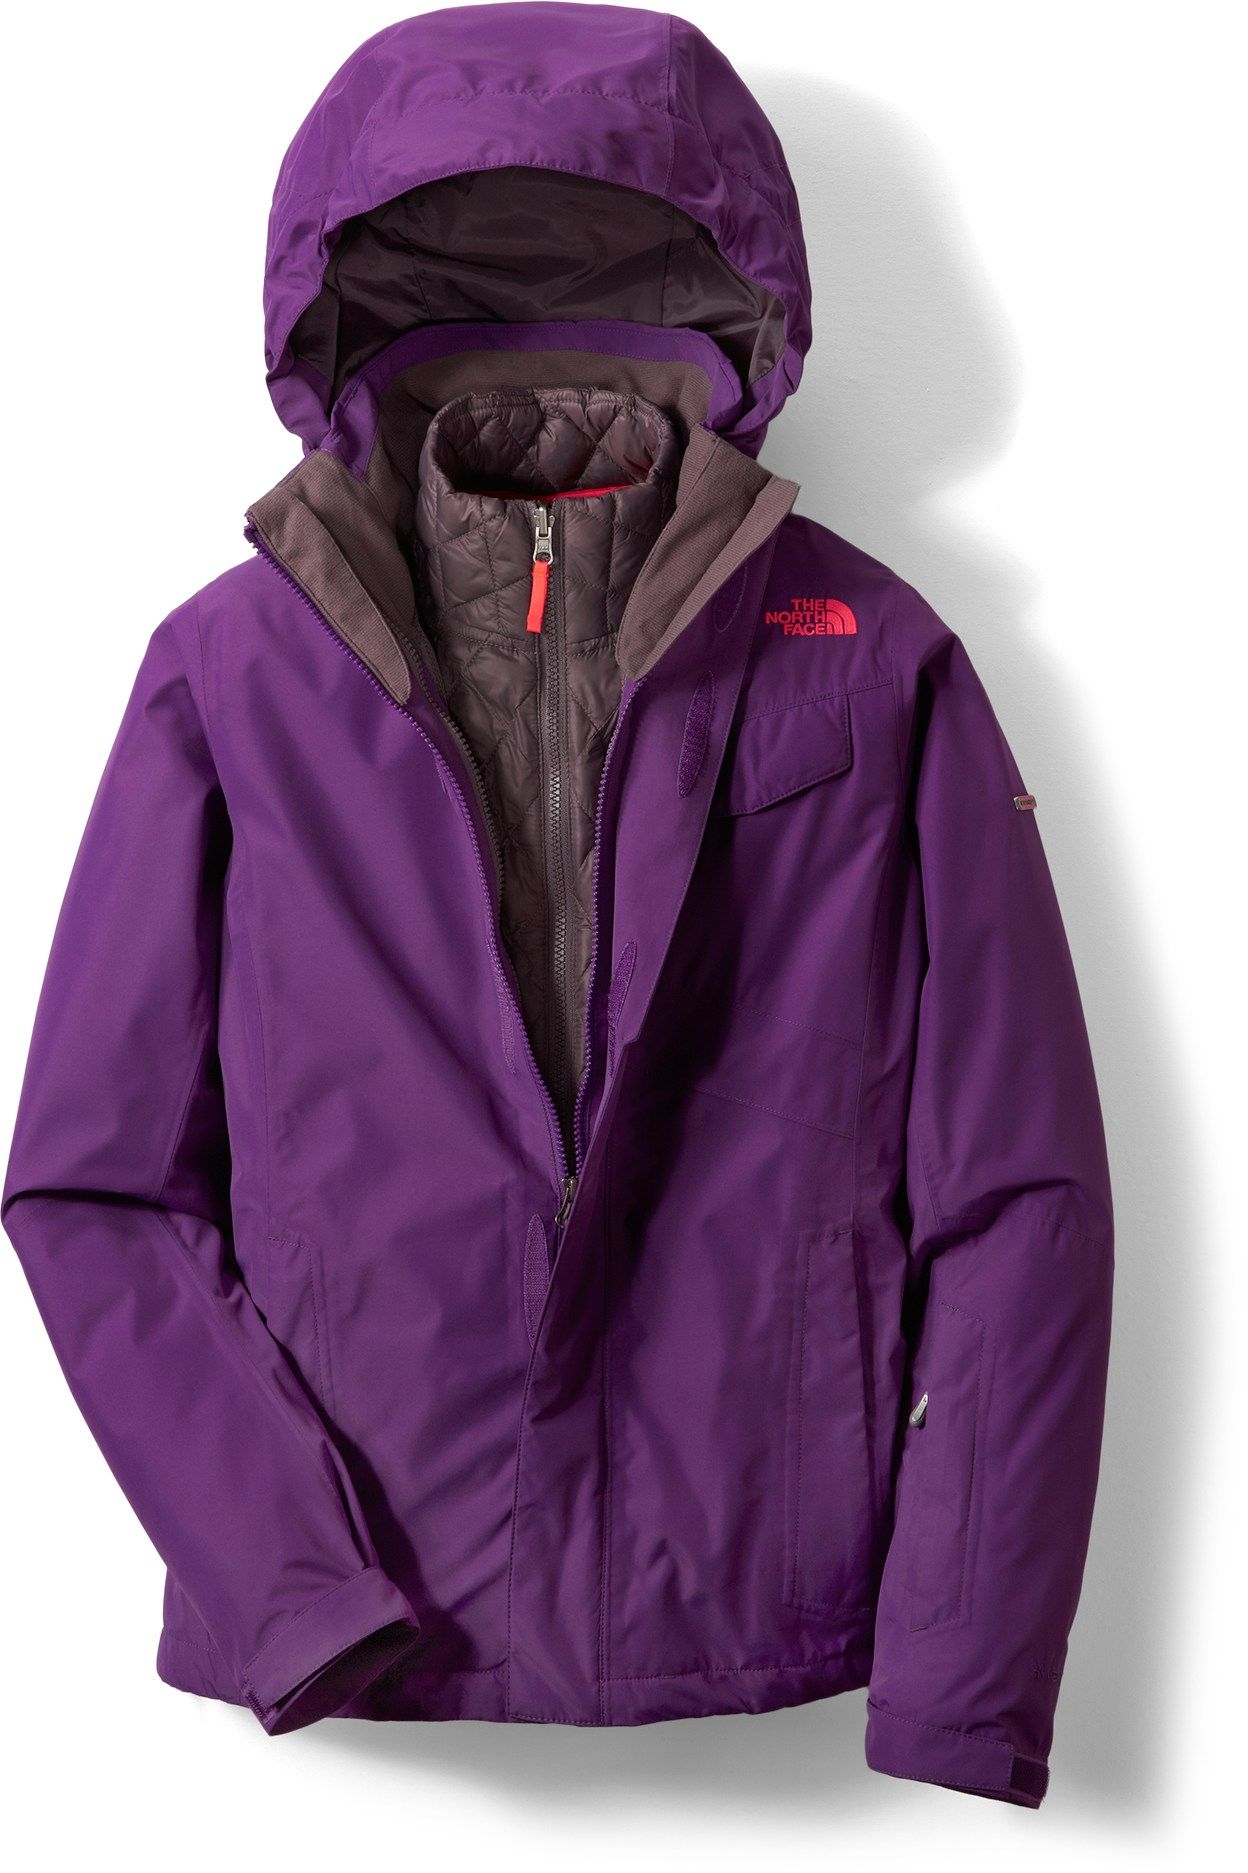 7b40c7e659dd The North Face Helata ThermoBall Triclimate 3-in-1 Jacket - Women s -  REI.com